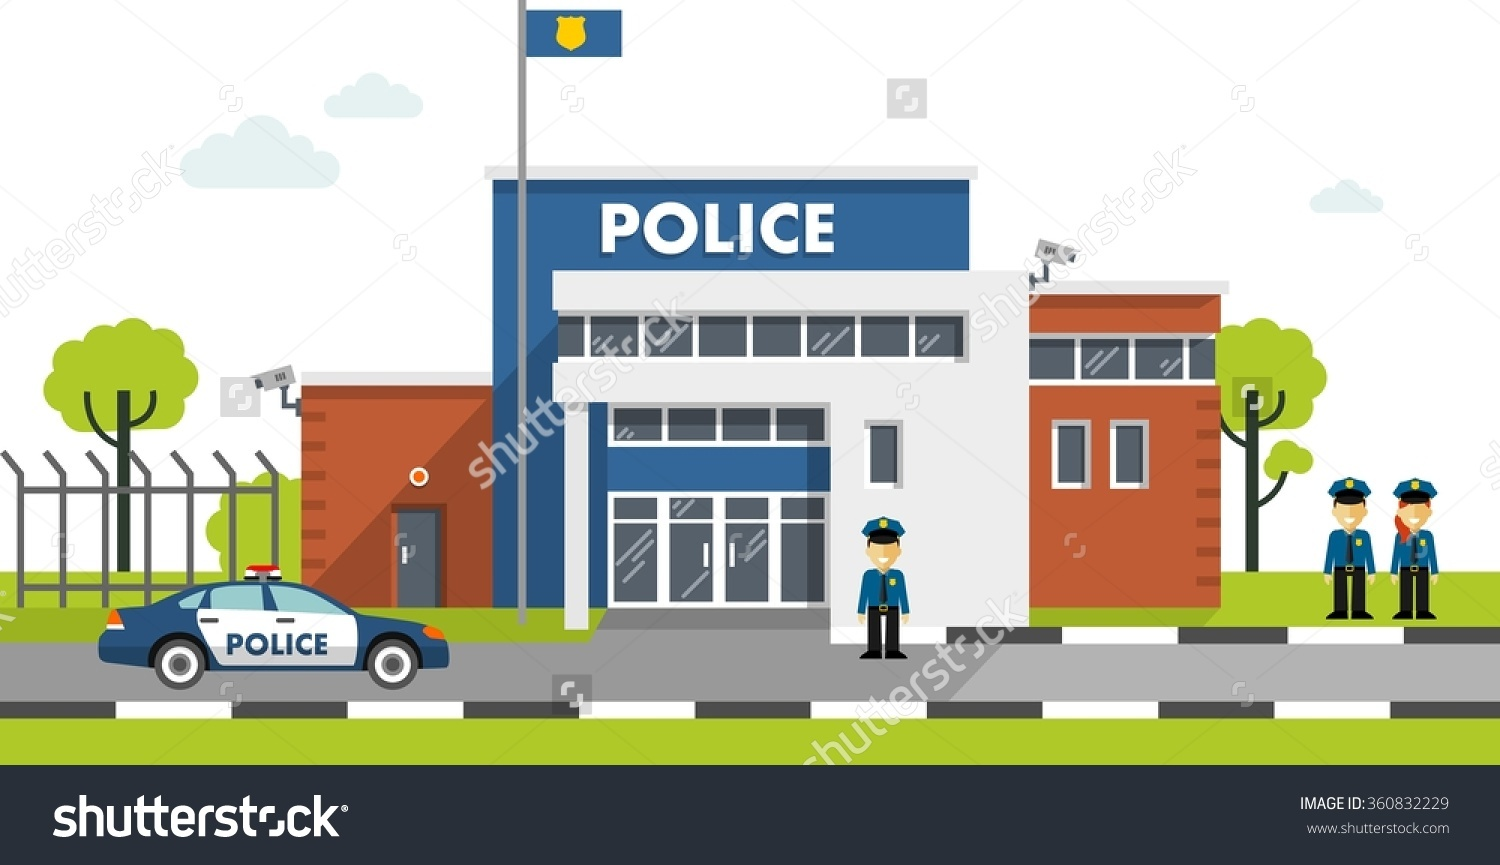 Police station with police car clipart graphic City Police Station Department Building Landscape Stock Vector ... graphic